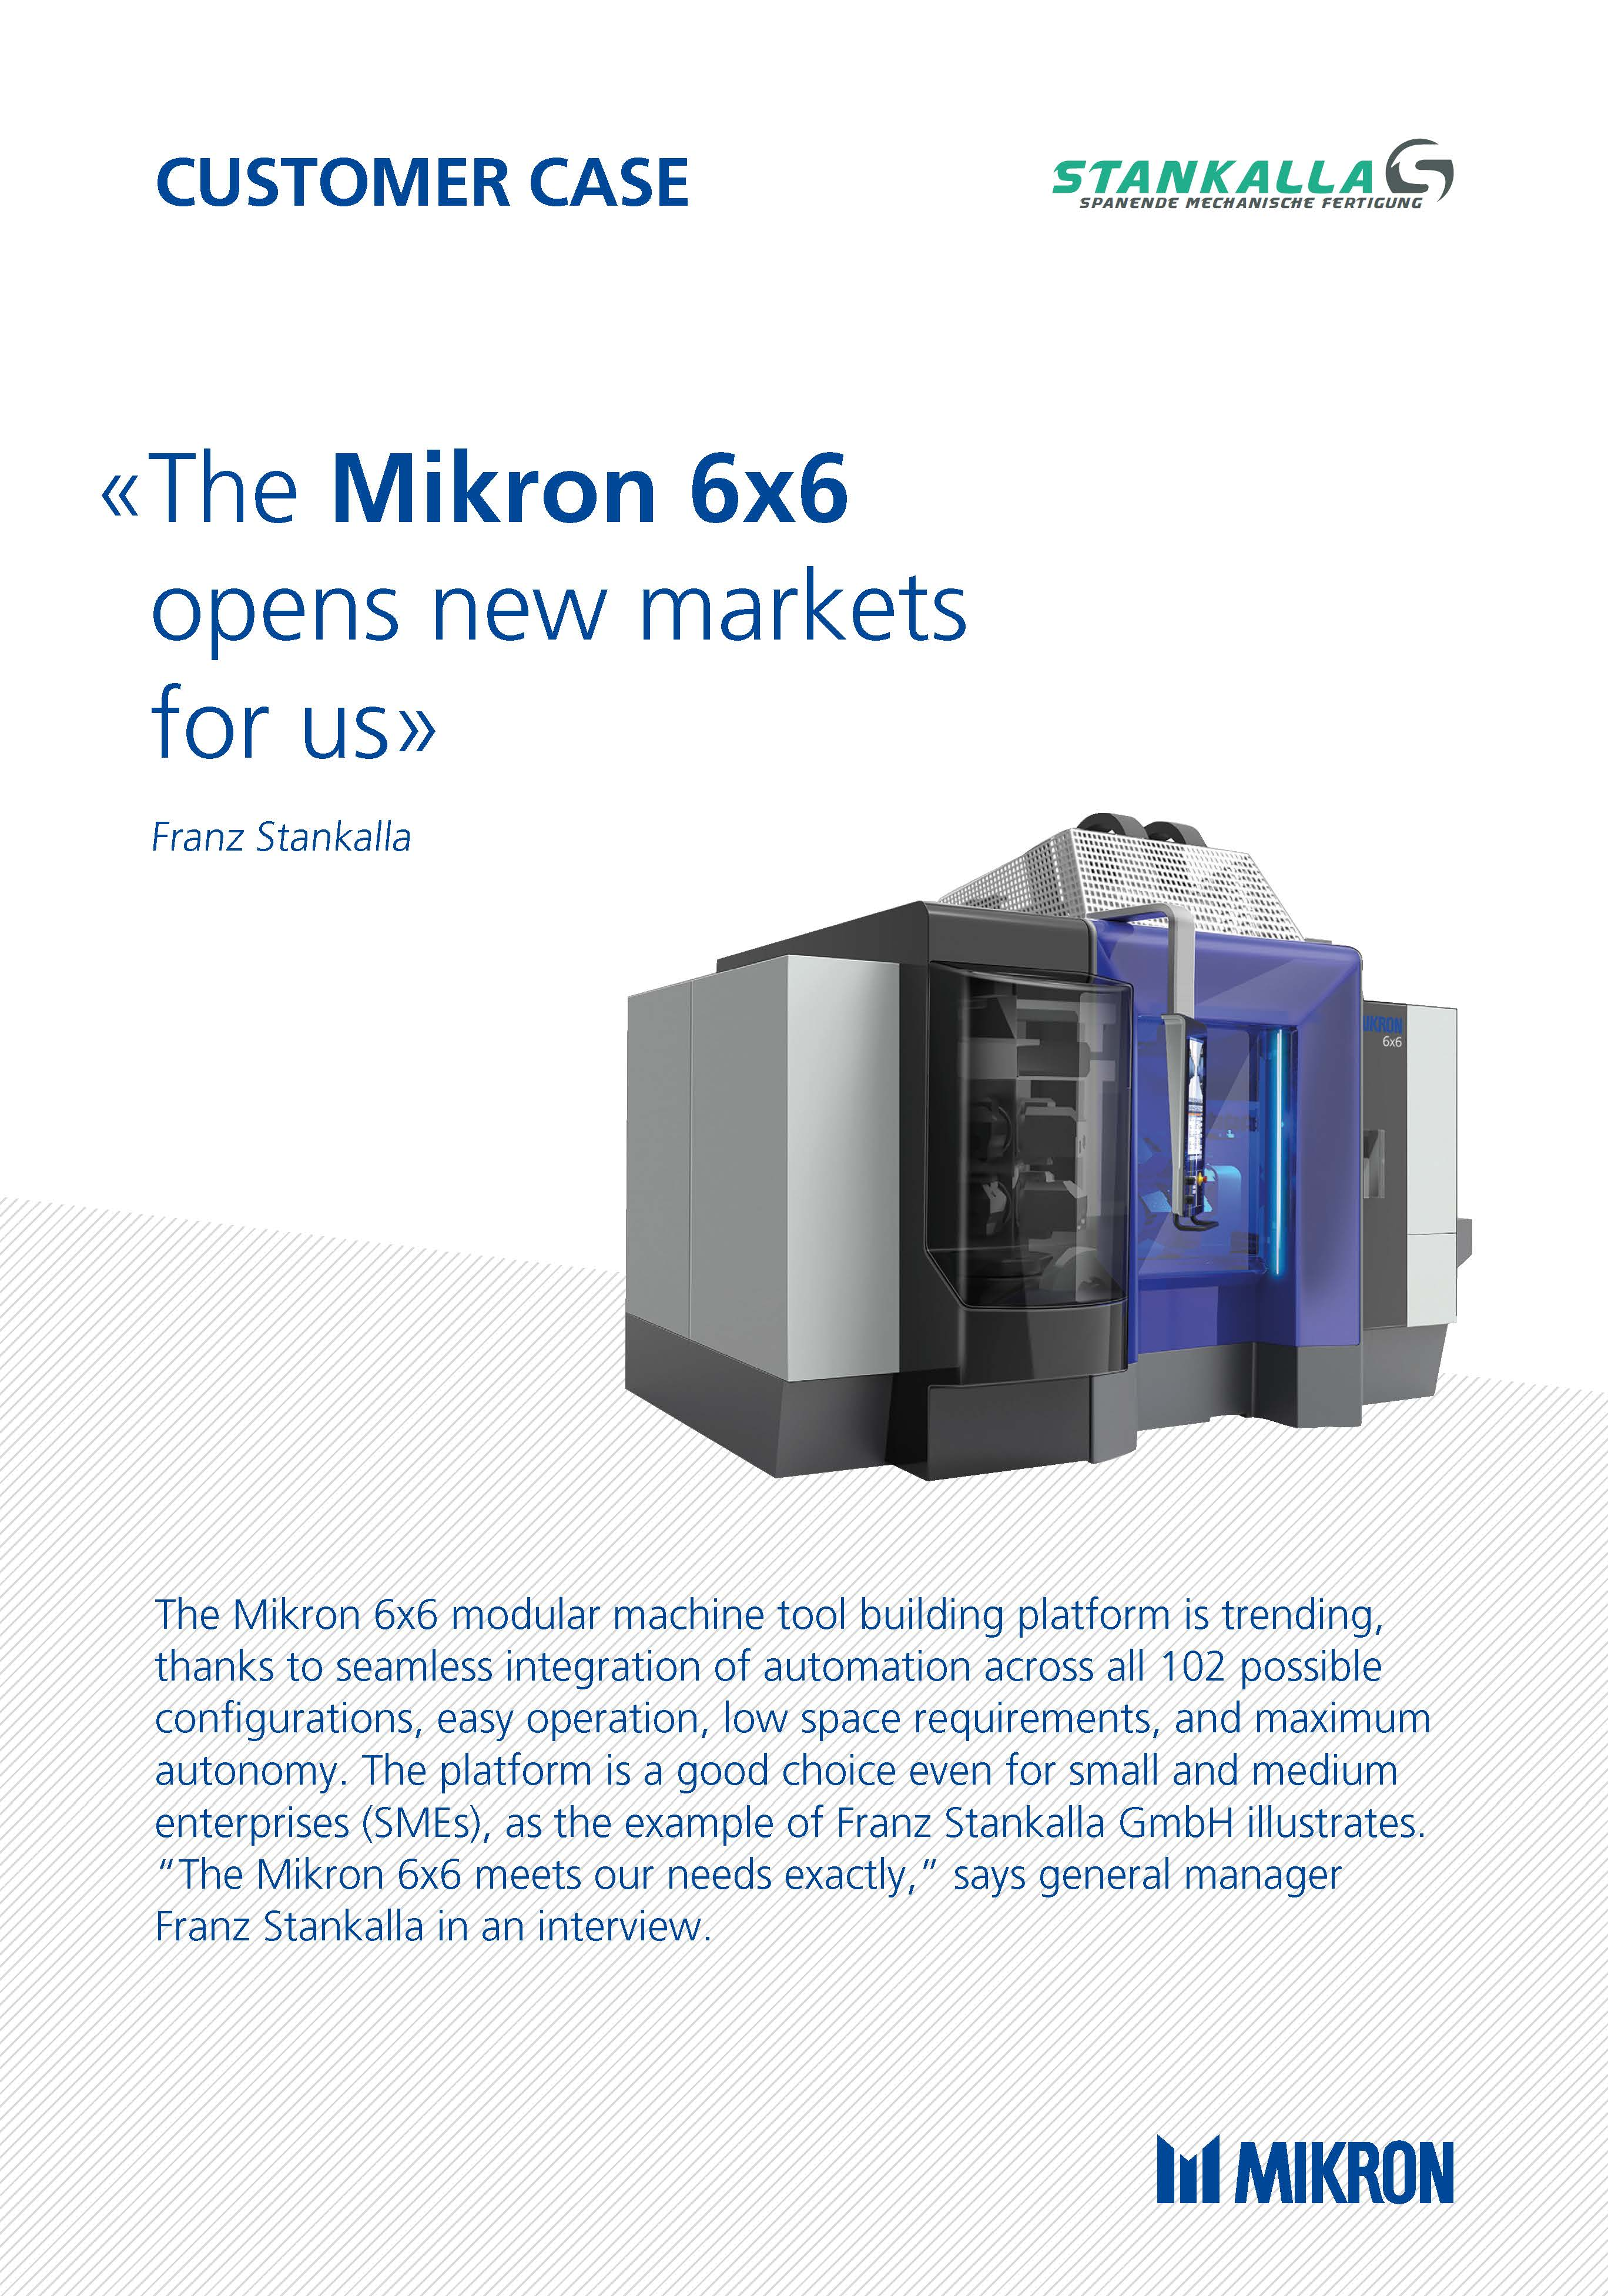 fileadmin/user_upload/03mikron_machining/1_machining_systems/6x6/NEW/MIKRON_6x6_-_CUSTOMER_CASE_FS_ENG_S1.jpg